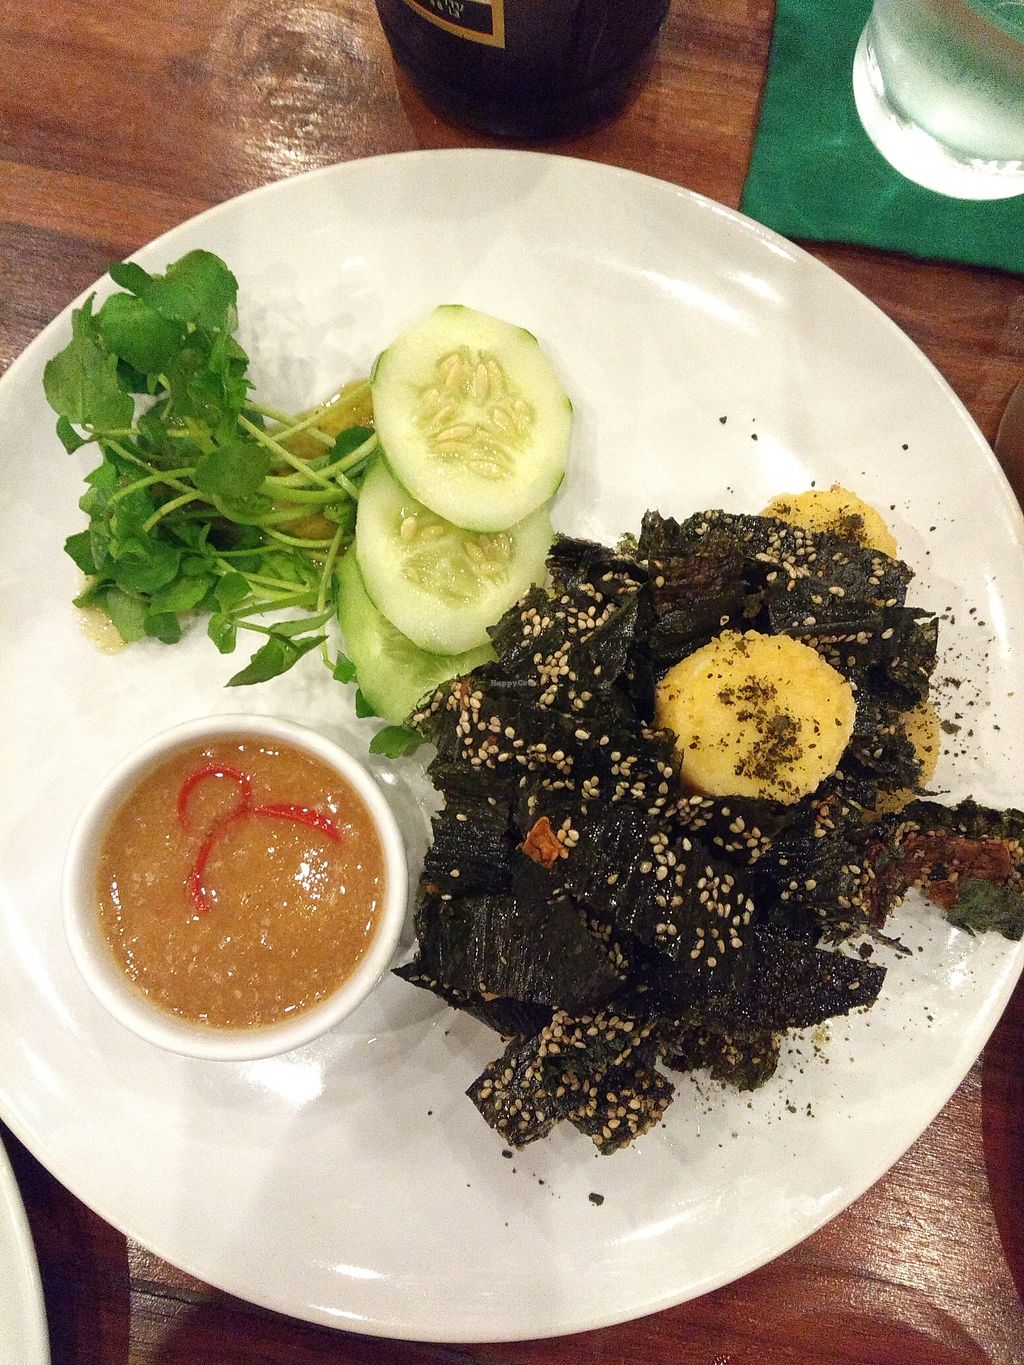 "Photo of Khaiphaen  by <a href=""/members/profile/Kkdempsey"">Kkdempsey</a> <br/>Crispy seaweed was fantastic, unfortunately discovered afterwards that crispy tofu is made with egg tofu <br/> November 30, 2017  - <a href='/contact/abuse/image/67897/330731'>Report</a>"